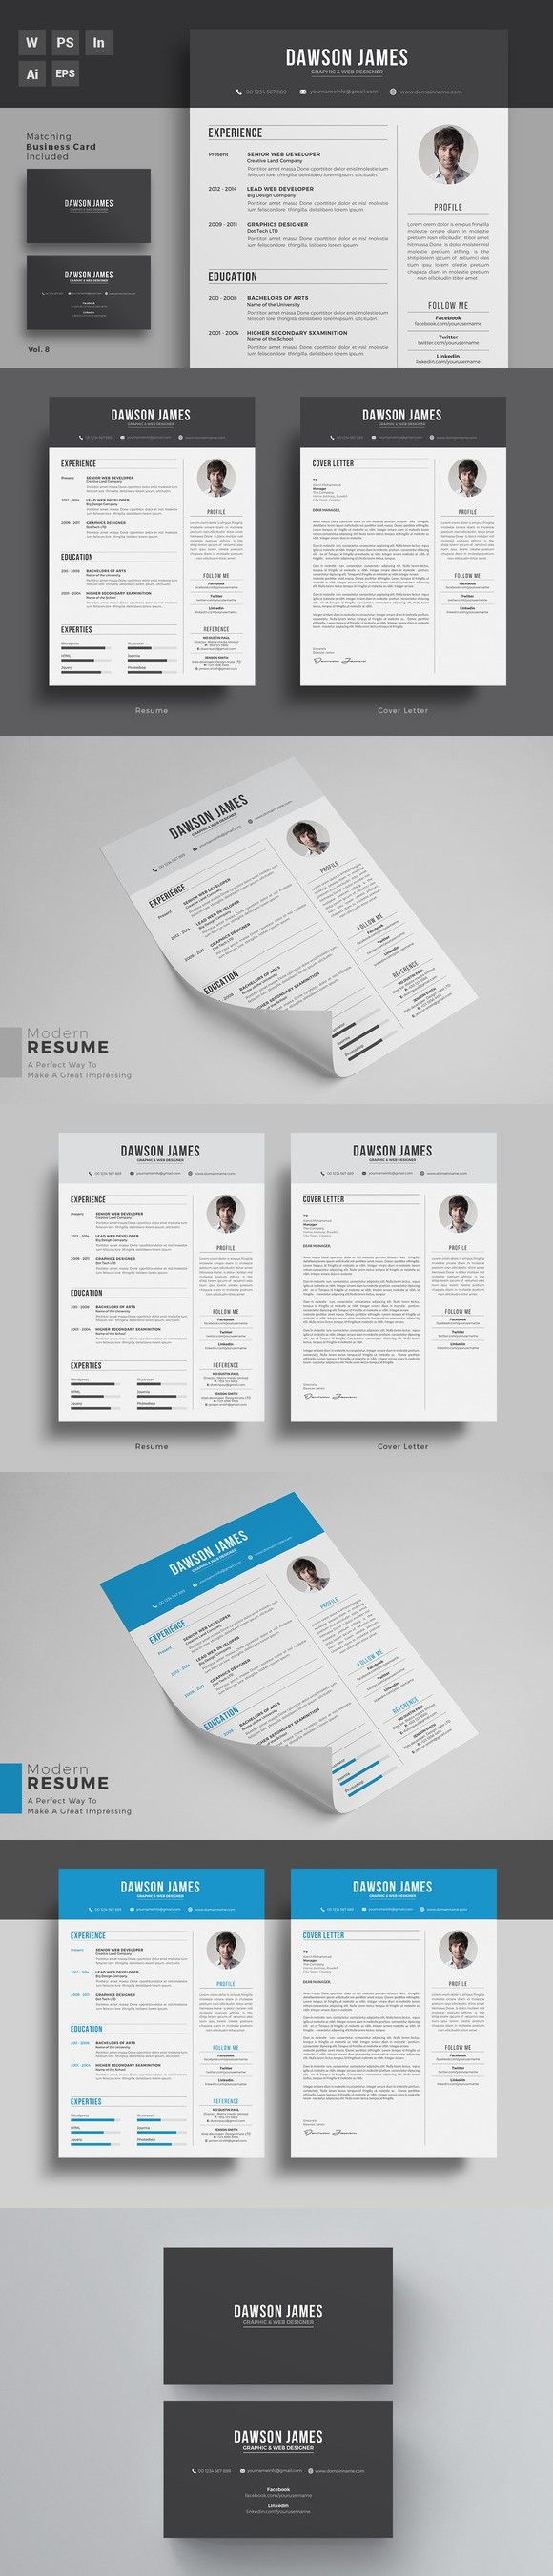 Resume/CV Word + Indesign. Business Infographic